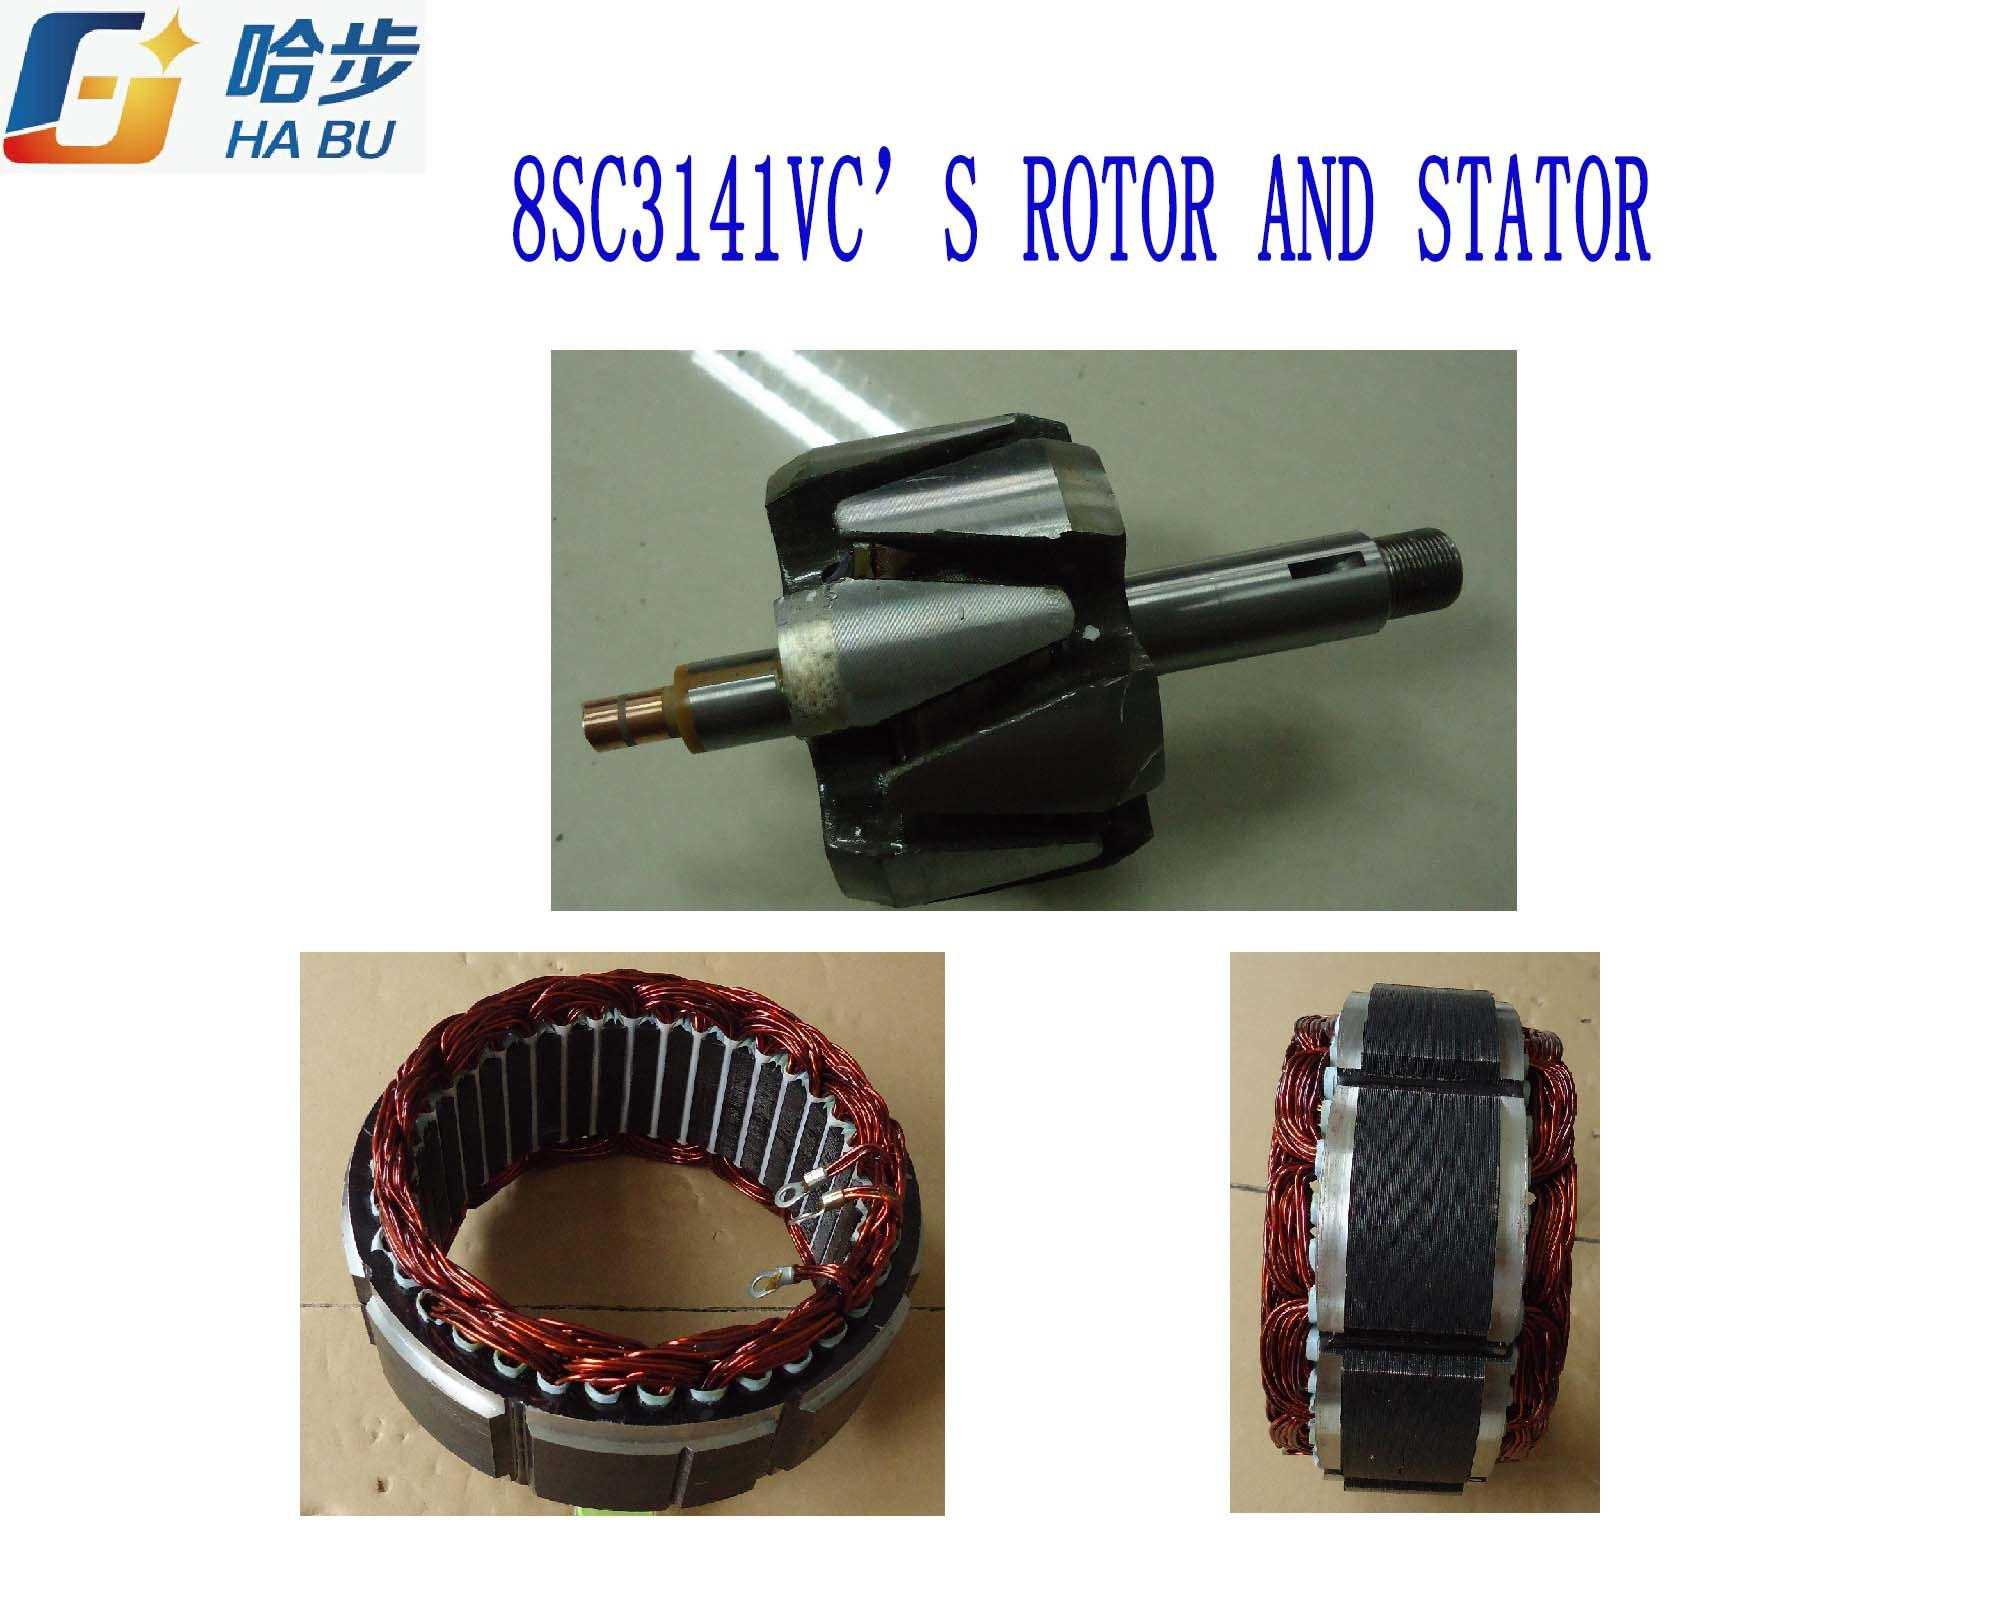 Prestolite Altenator′s Stator and Rotor for 8sc3141vc